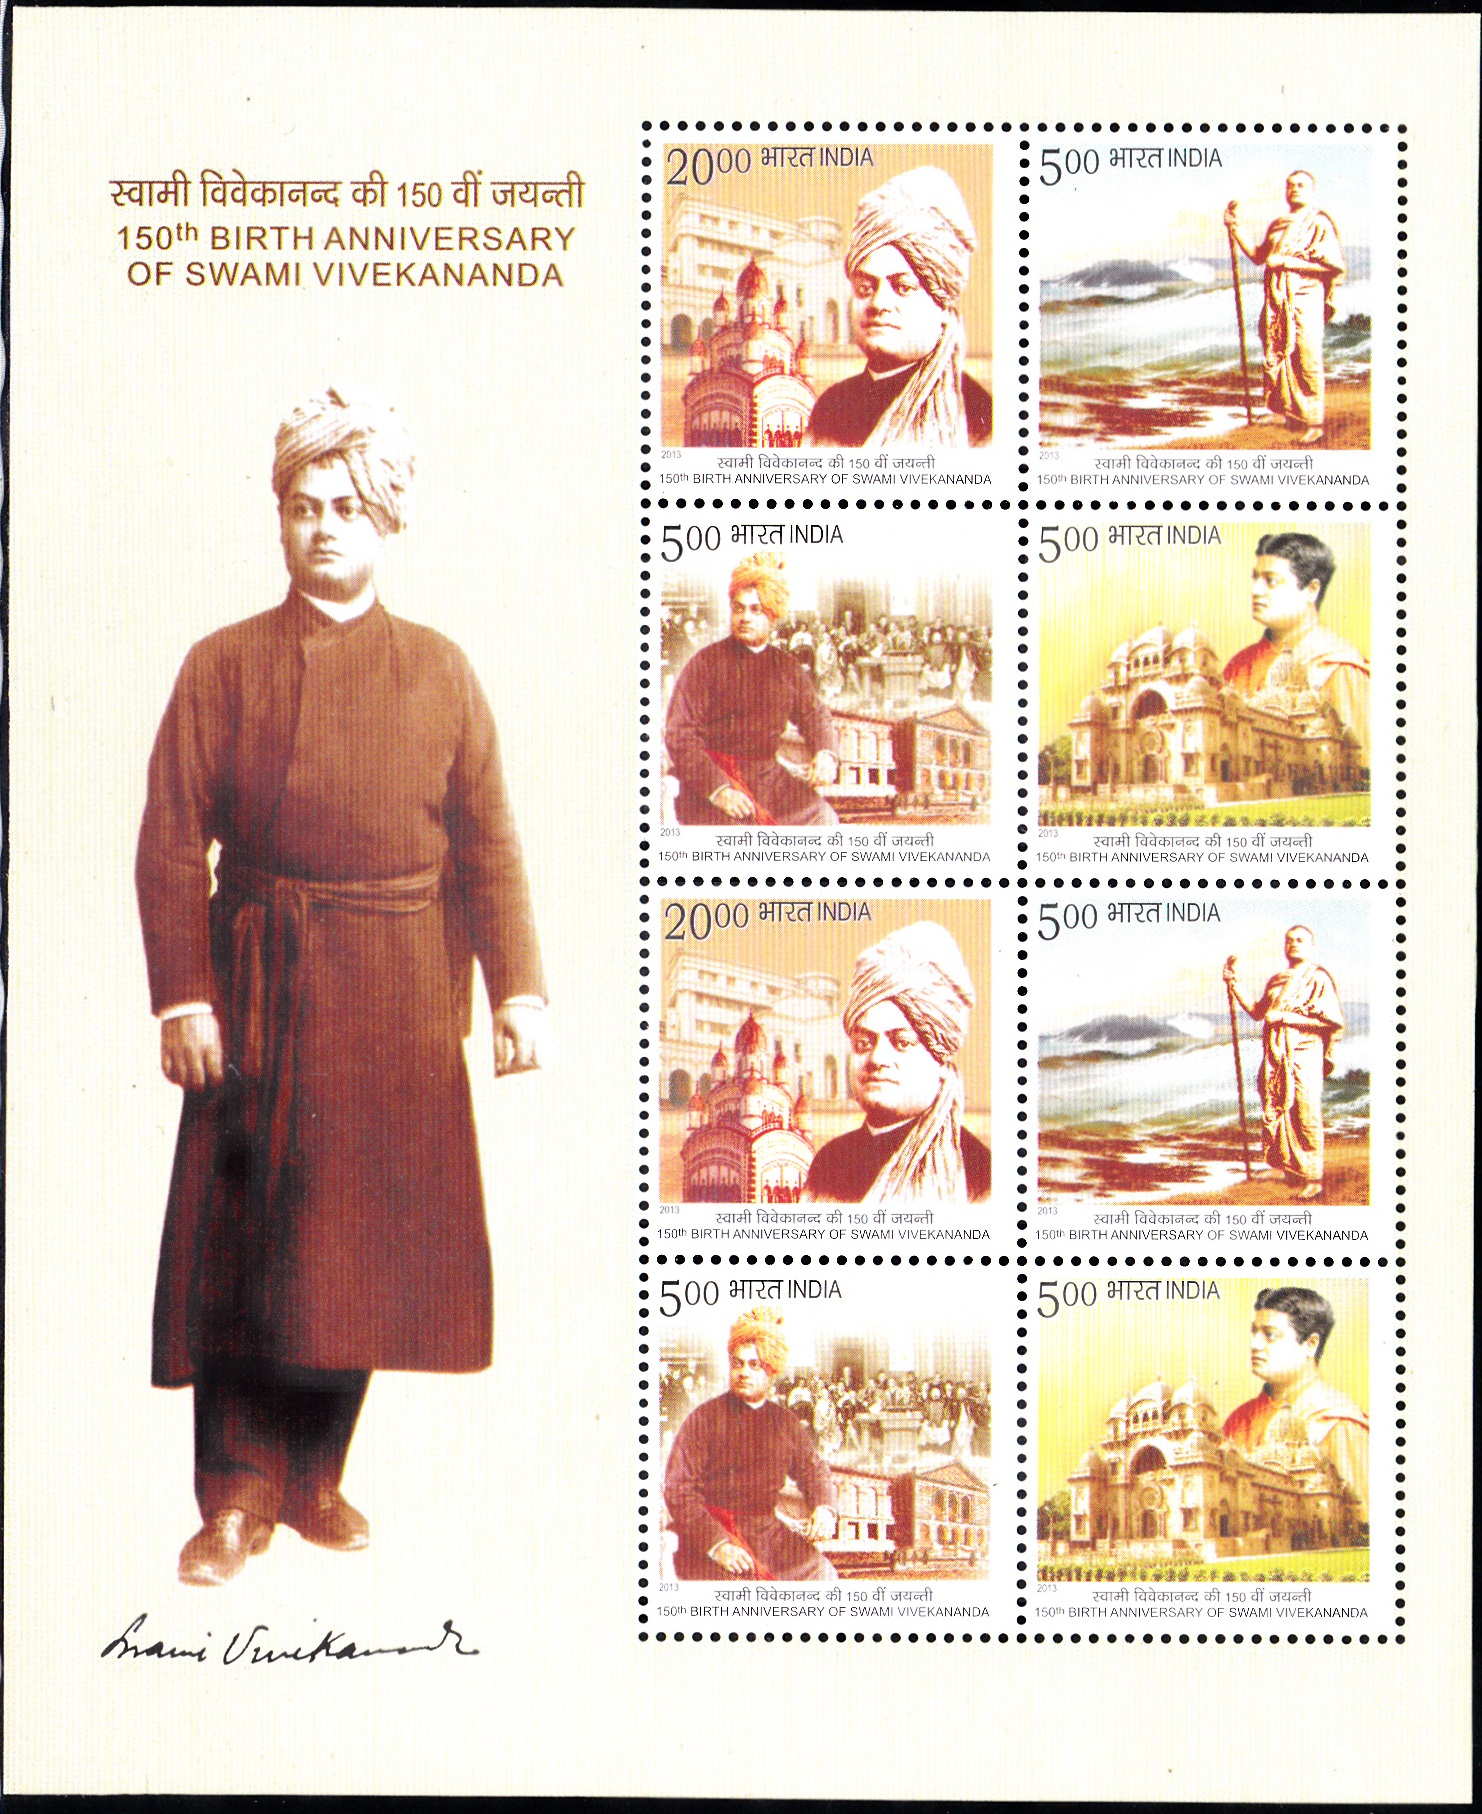 150th Birth Anniversary of Swami Vivekananda [Sheetlet]